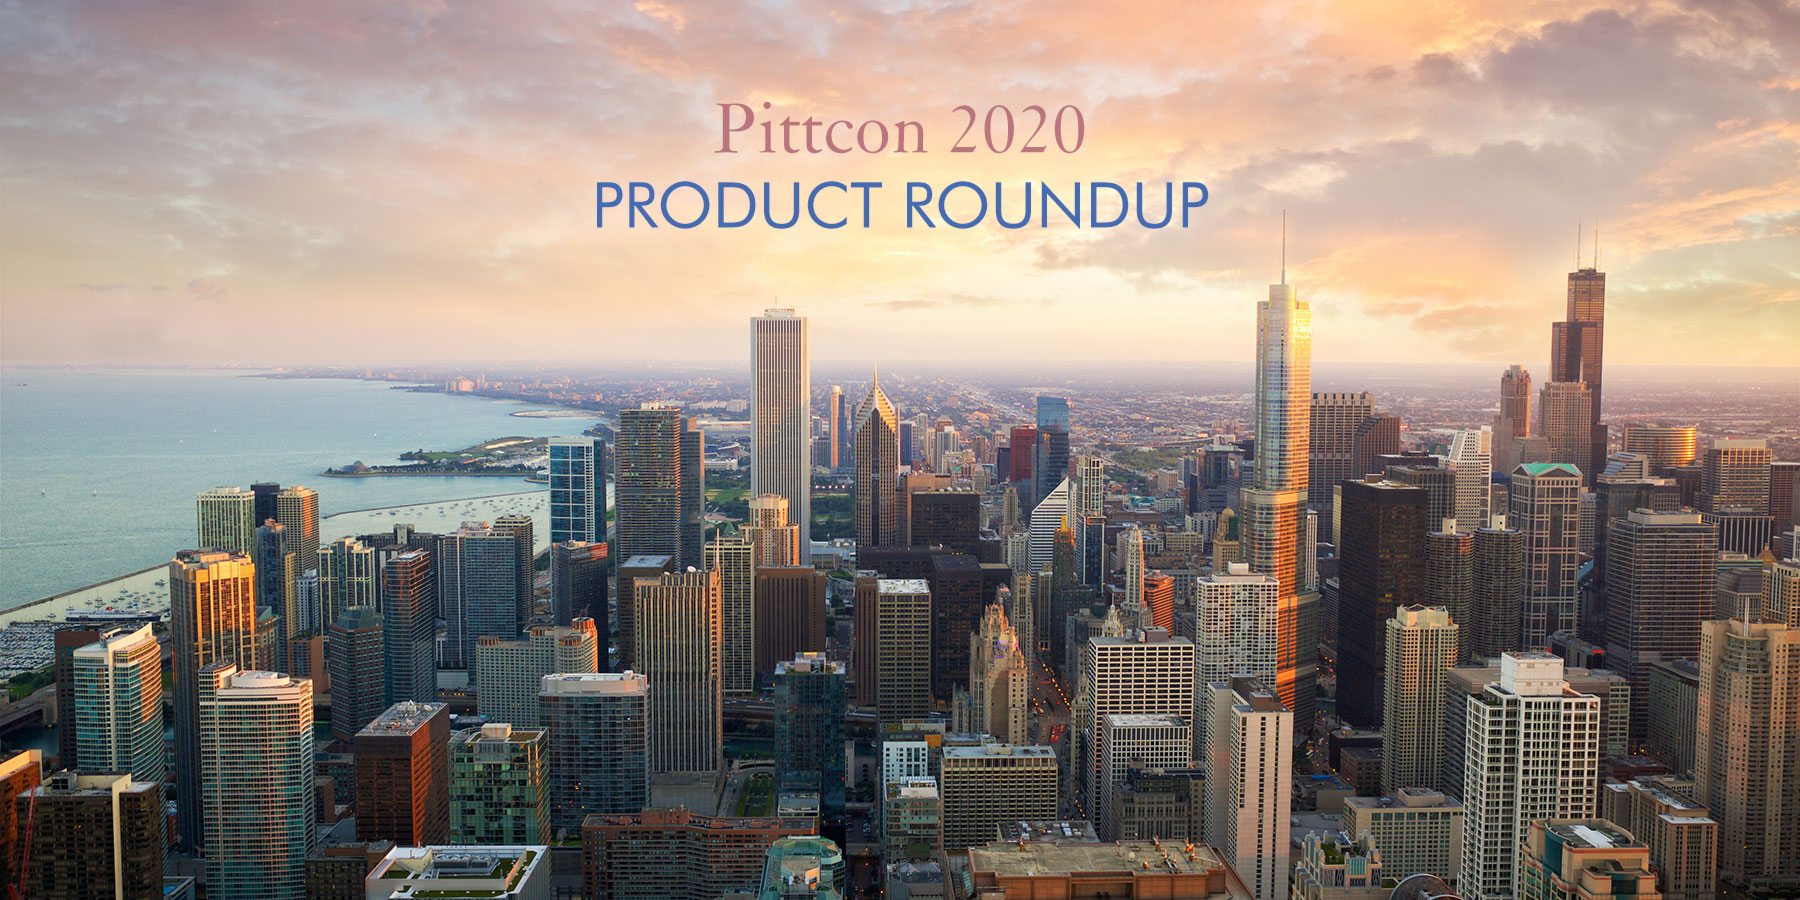 Pittcon Product Roundup